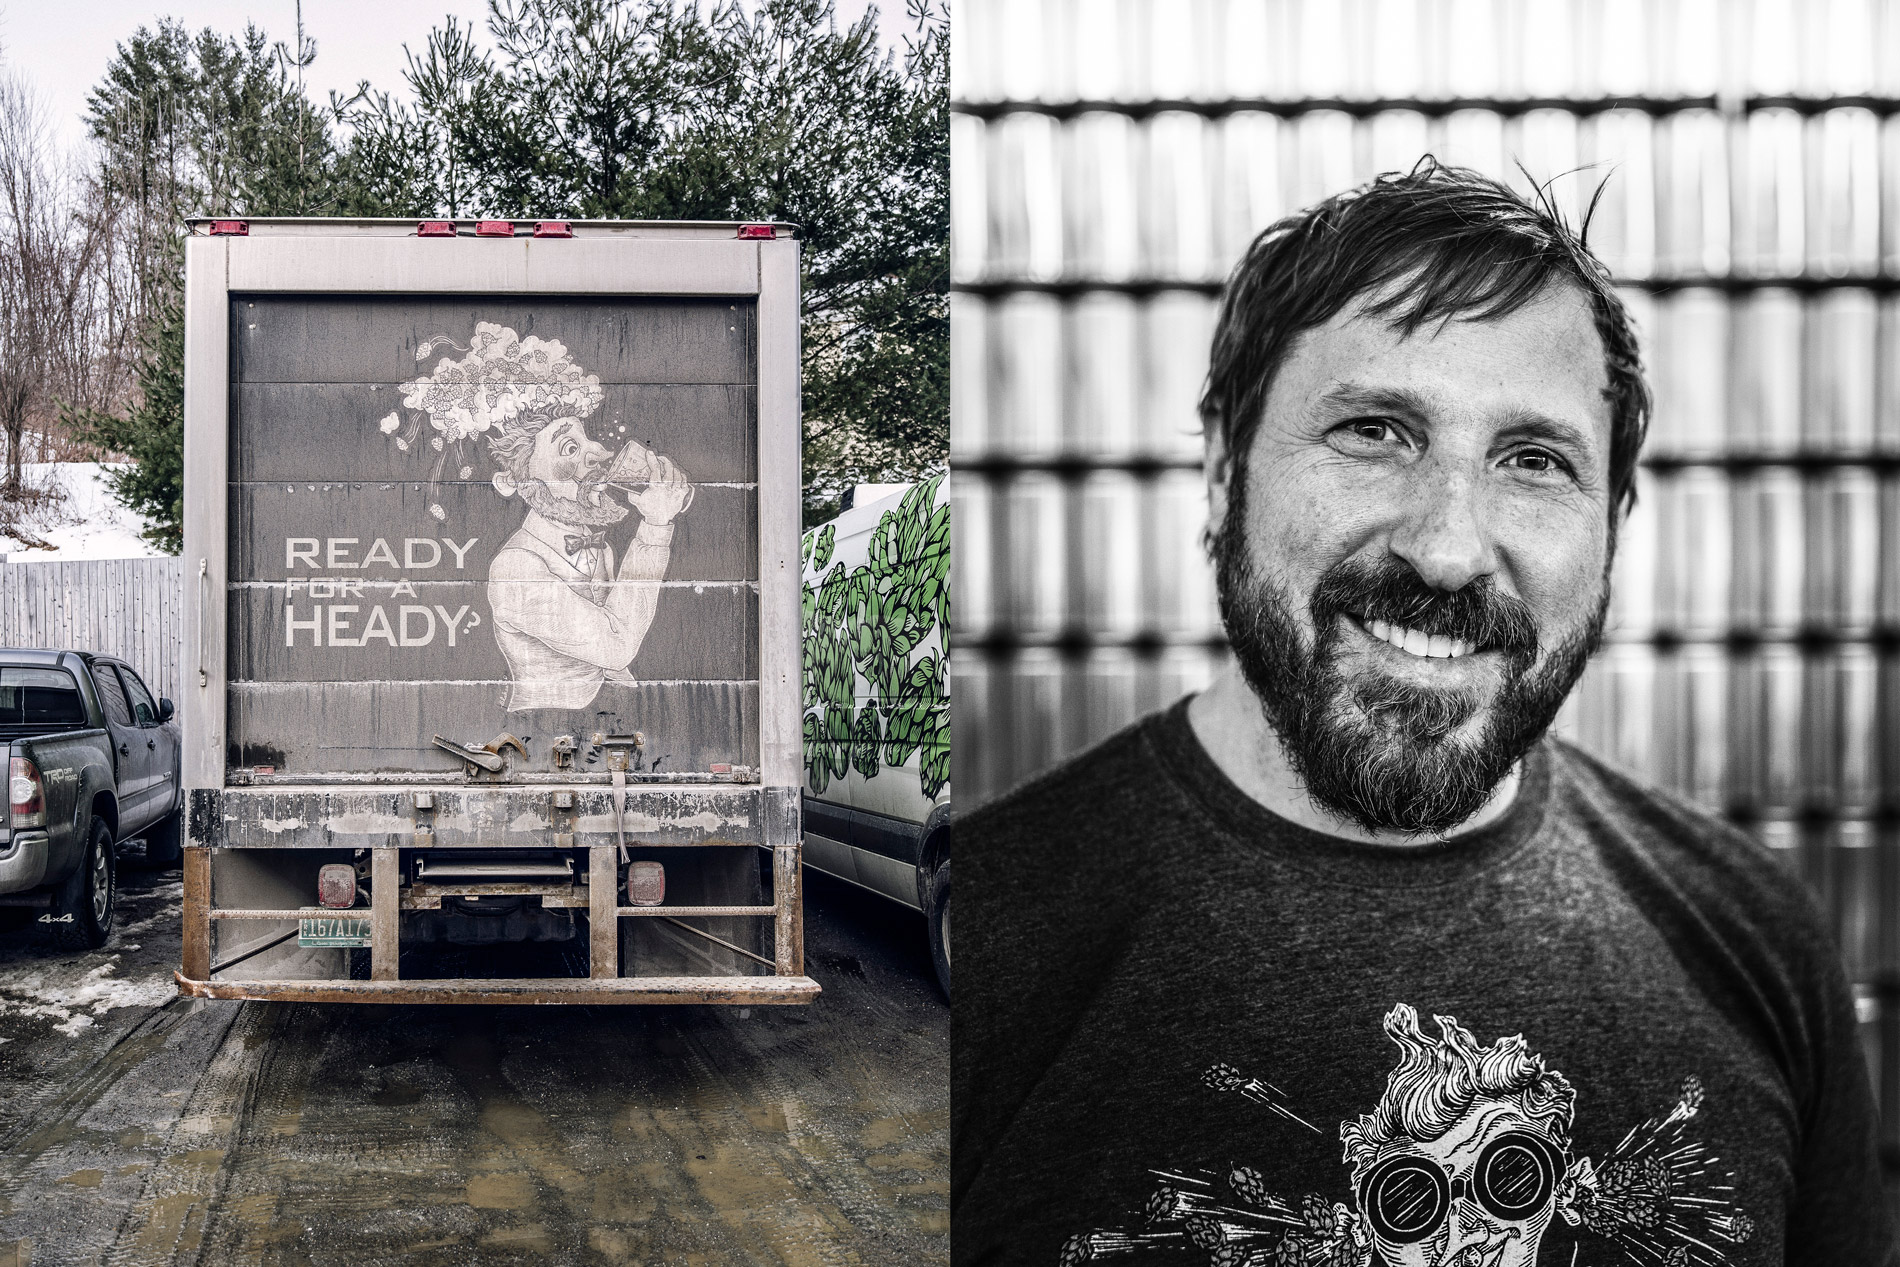 alchemist-heady-topper-truck-portrait-FT-BLOG0217.jpg